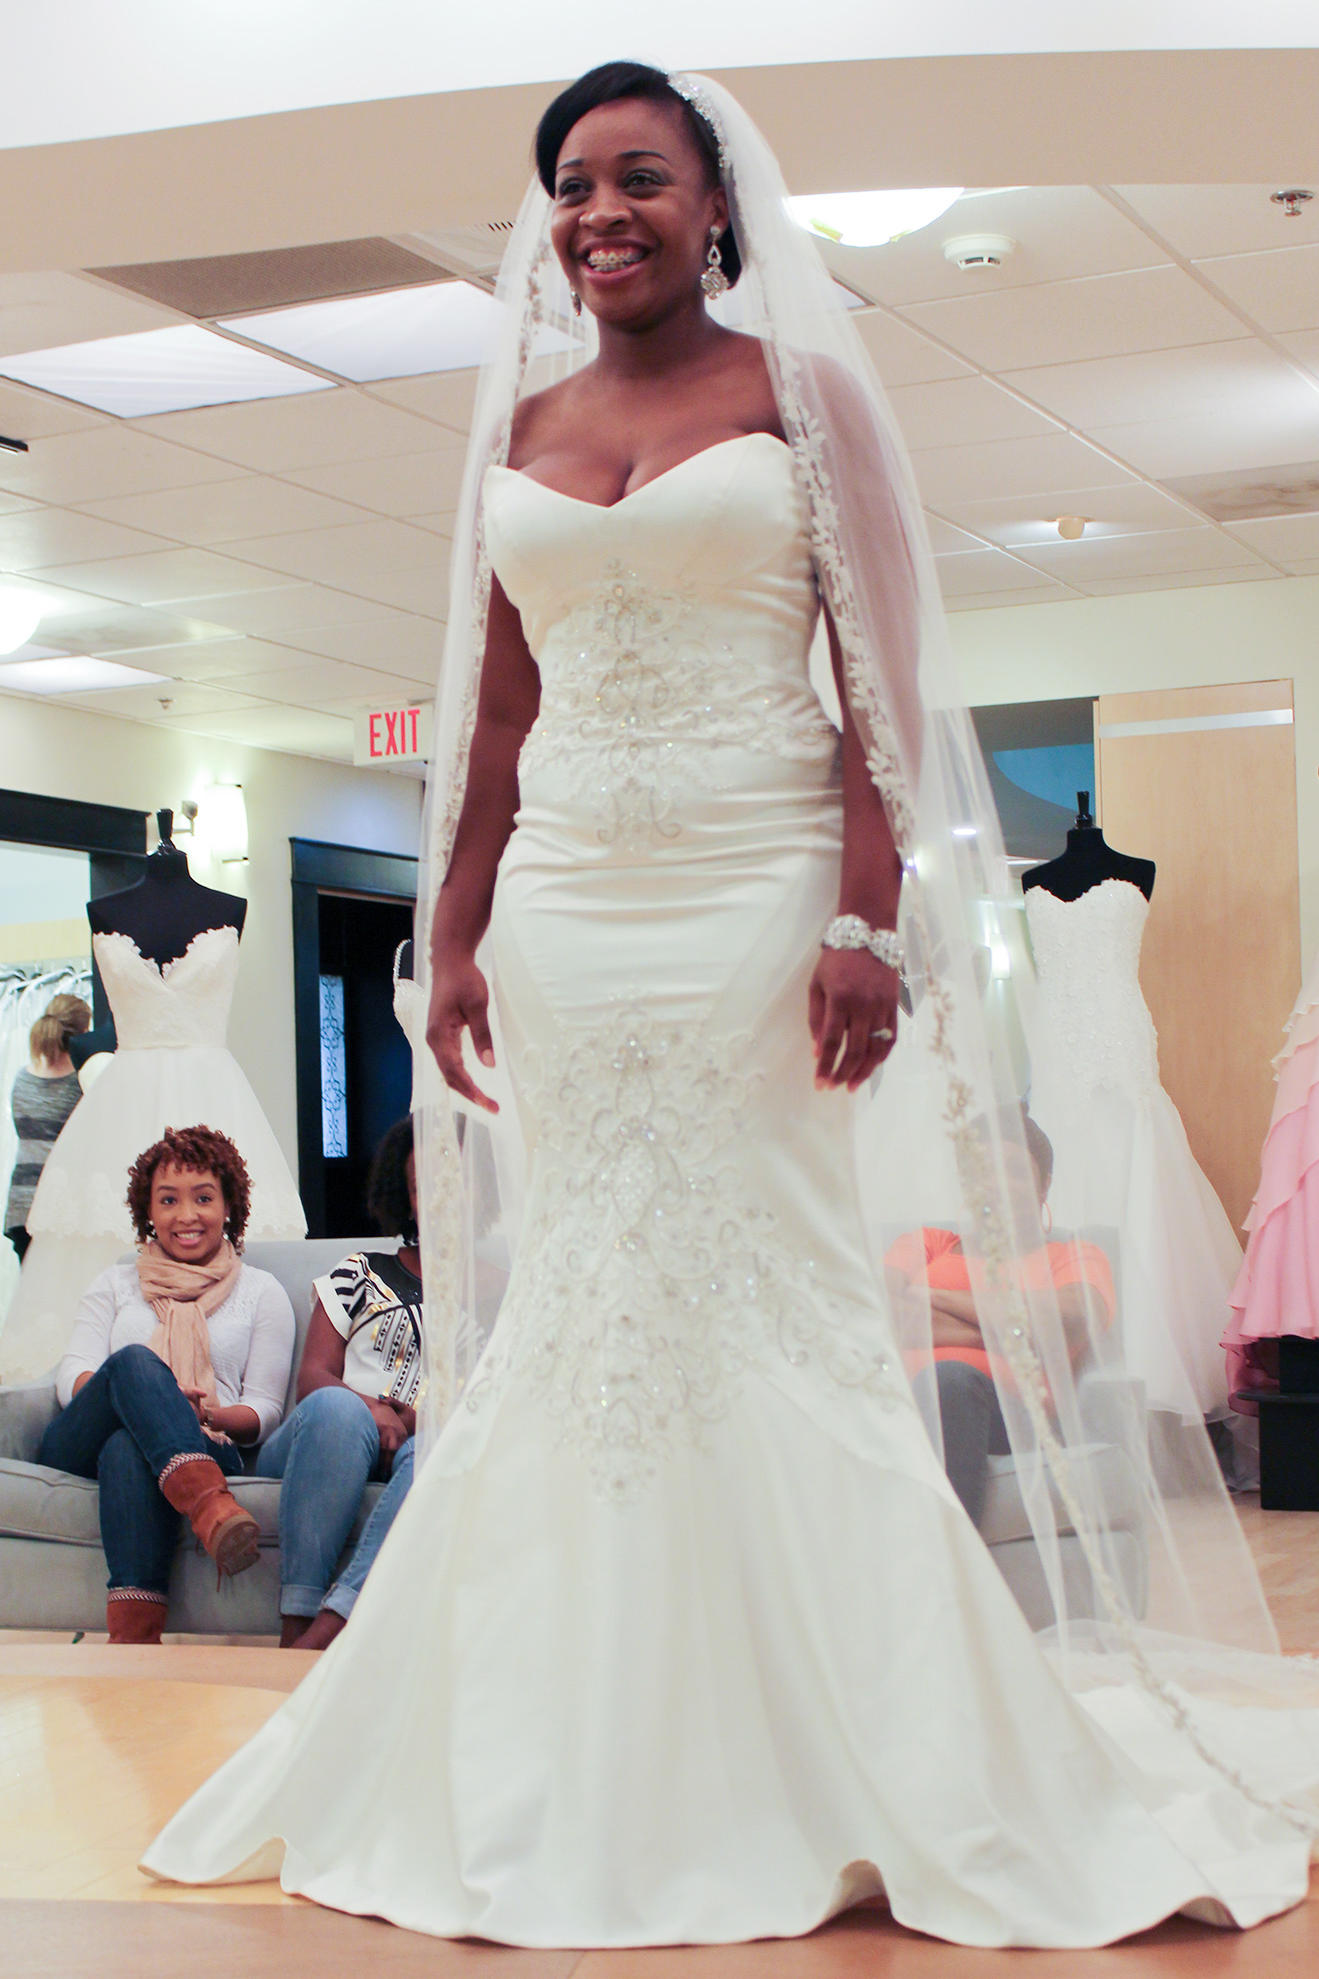 Elegant atlanta wedding dress images decors dievoon for Atlanta wedding dresses stores